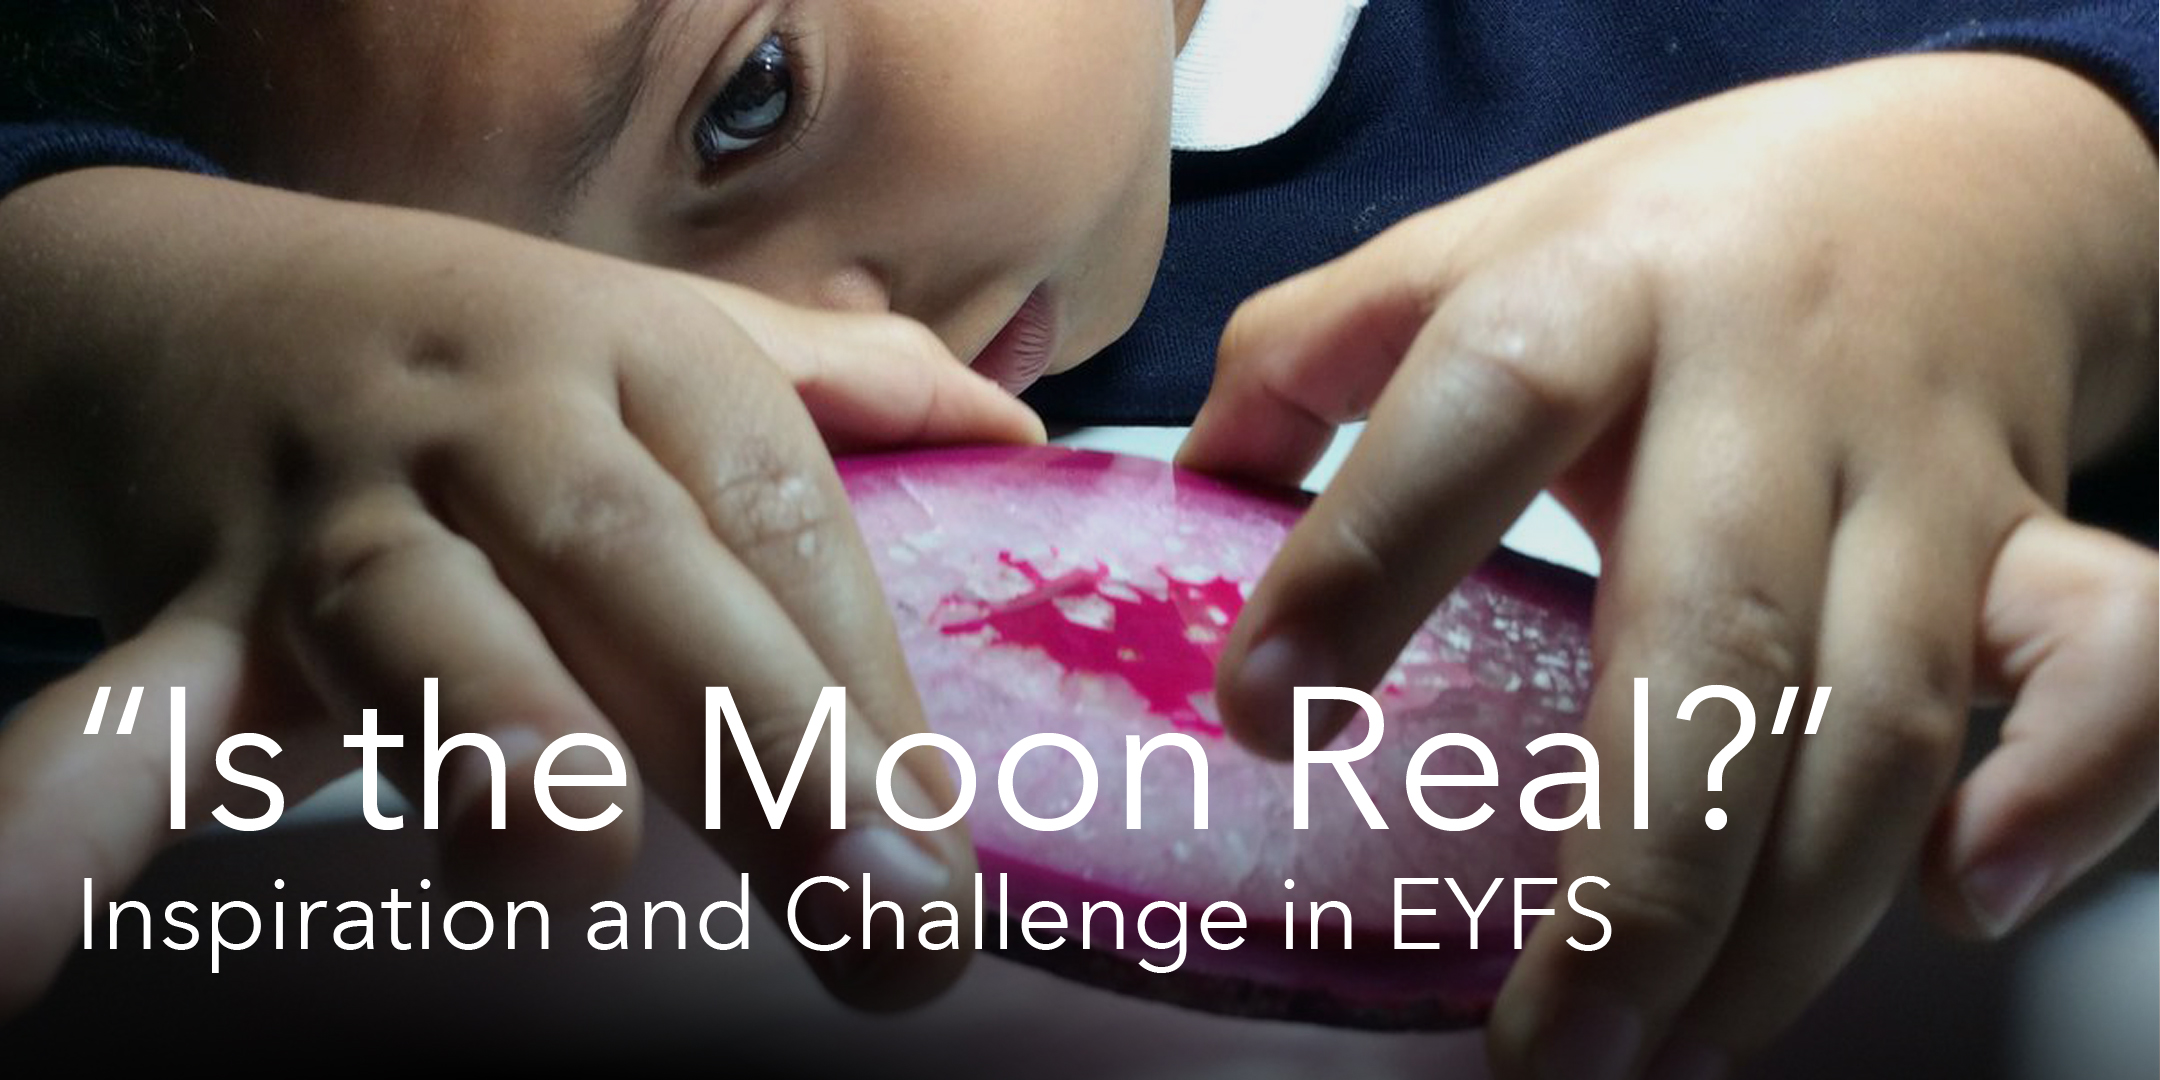 """Is the Moon Real?"": Inspiration and Challenge in EYFS"